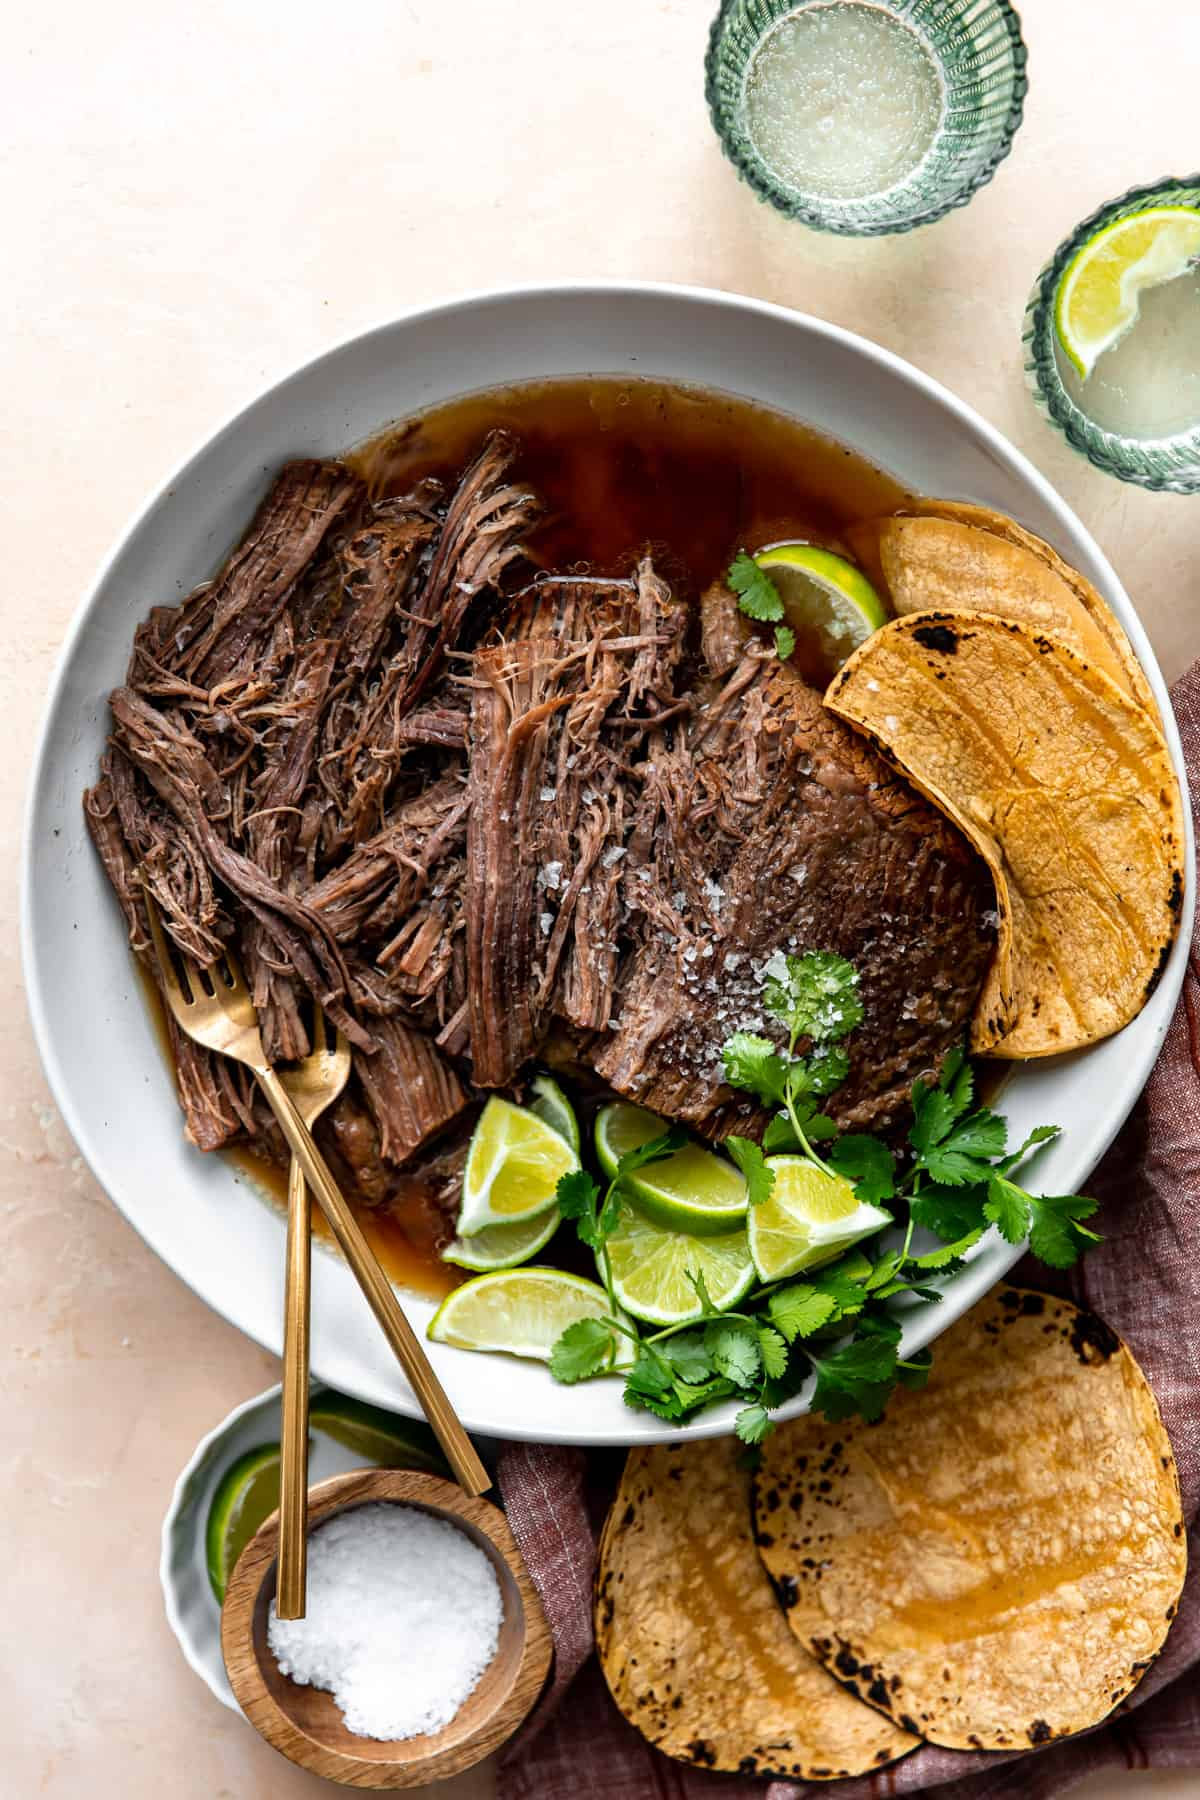 Bowl of shredded Mexican brisket for tacos.